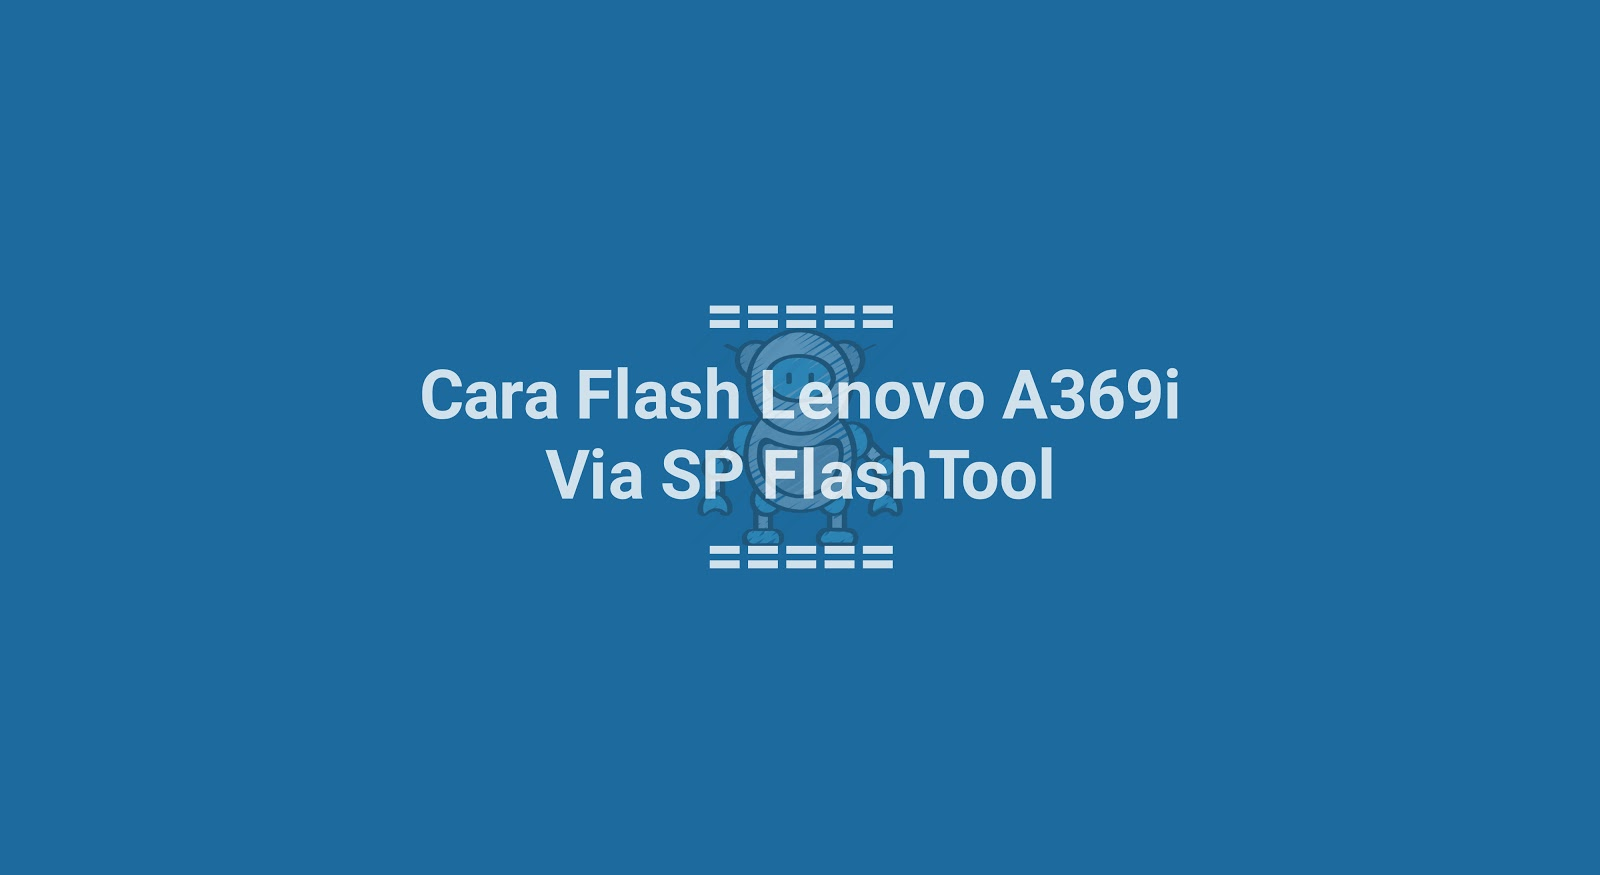 Cara Flash Lenovo A369i Via SP FlashTool